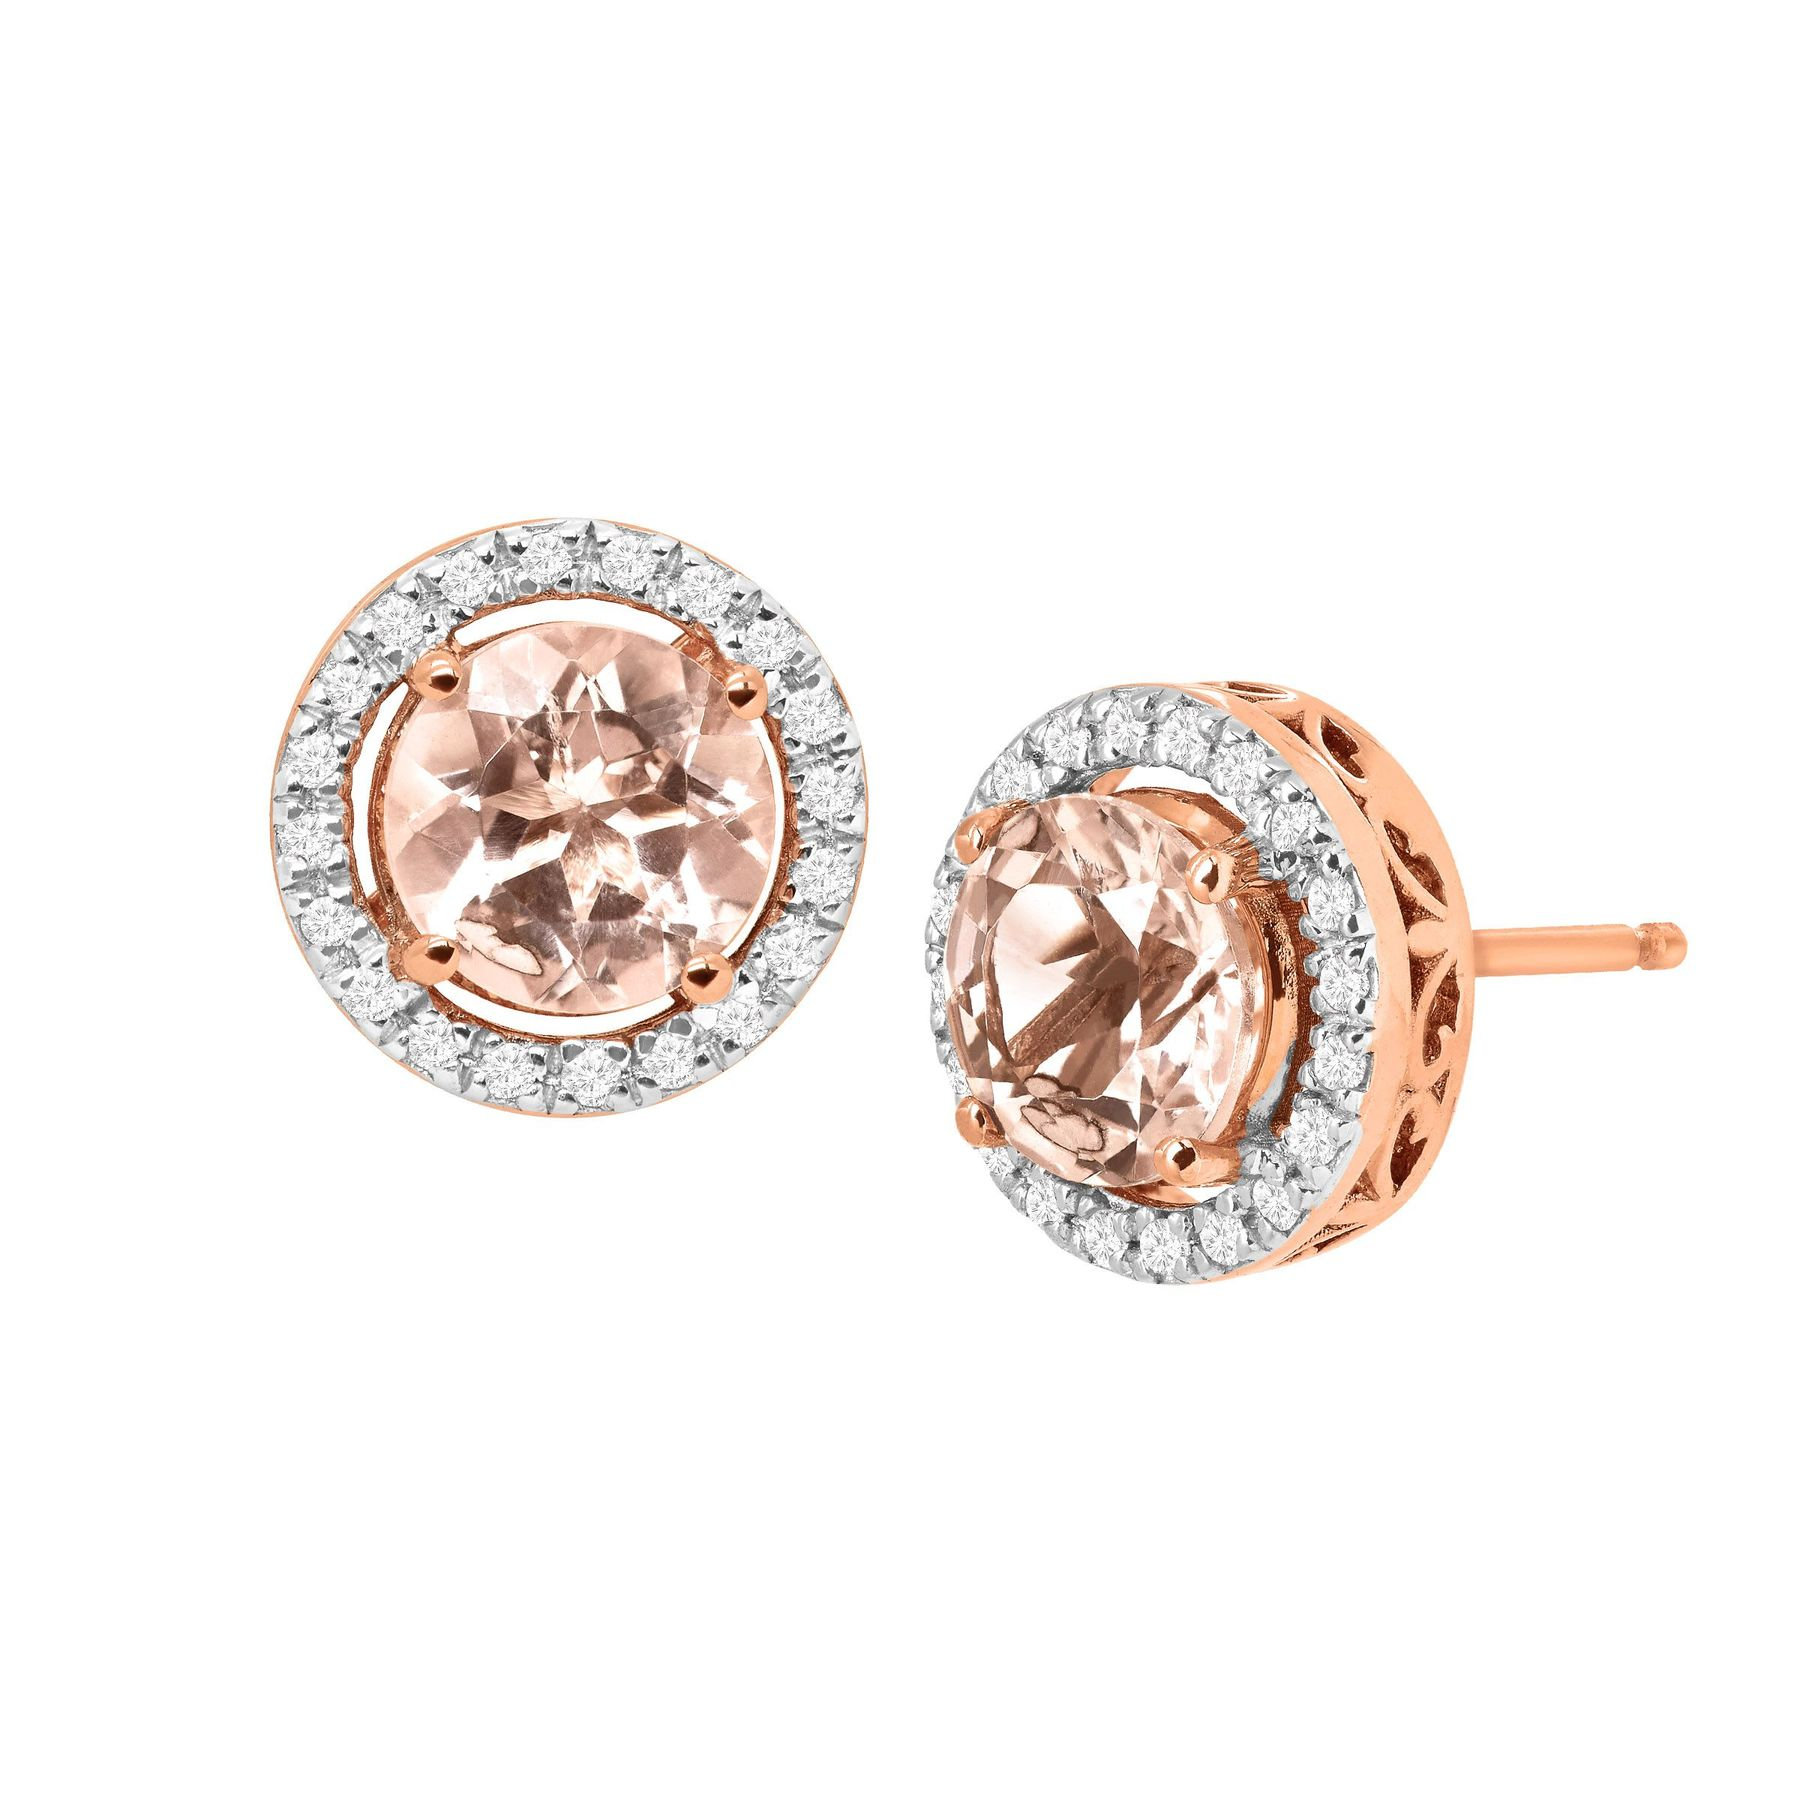 simon jewellers stud earrings scj diamond gold and rose curwood morganite